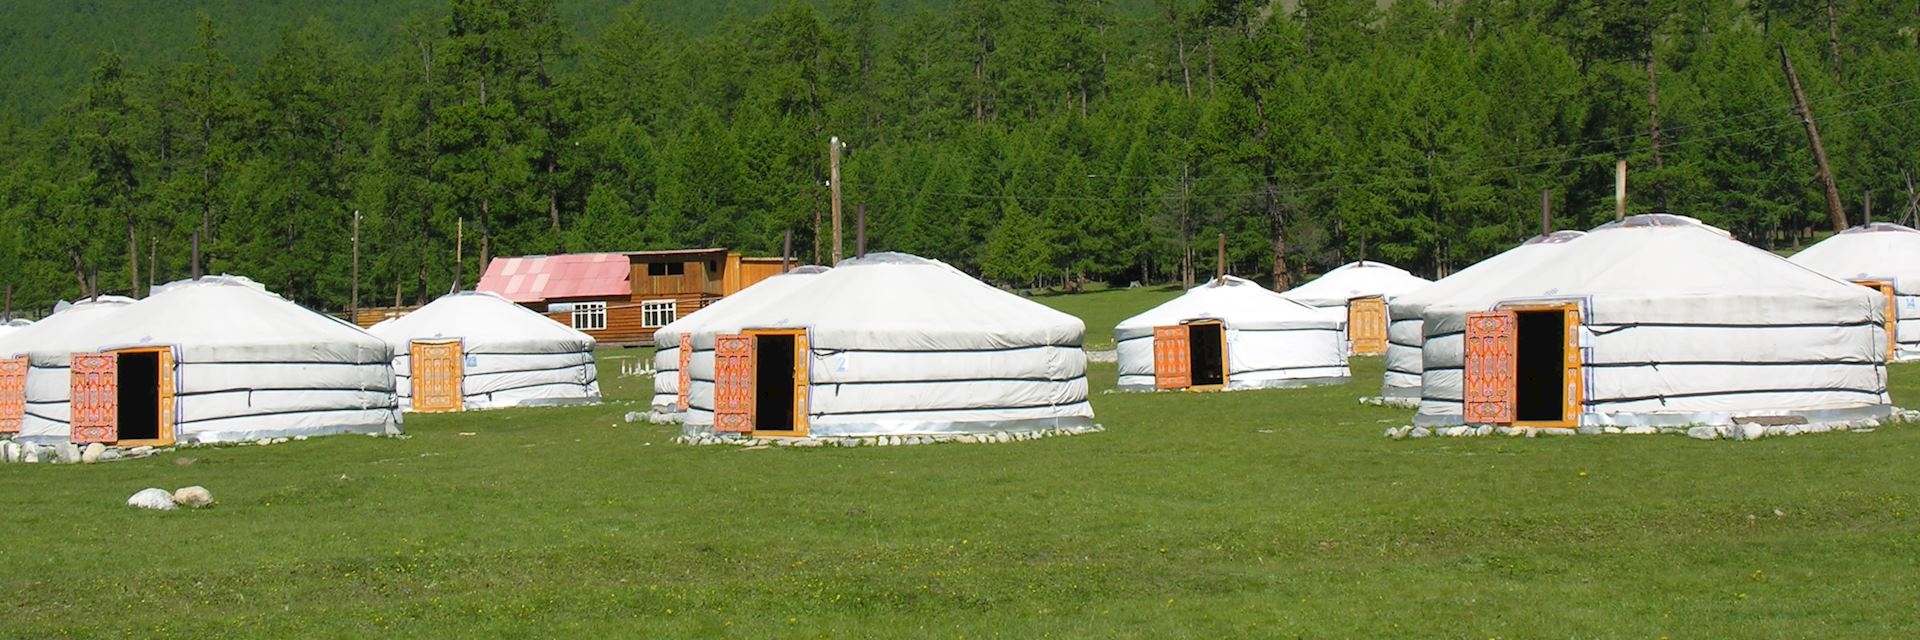 Blue Pearl Ger Camp, Khuvsgul Lake